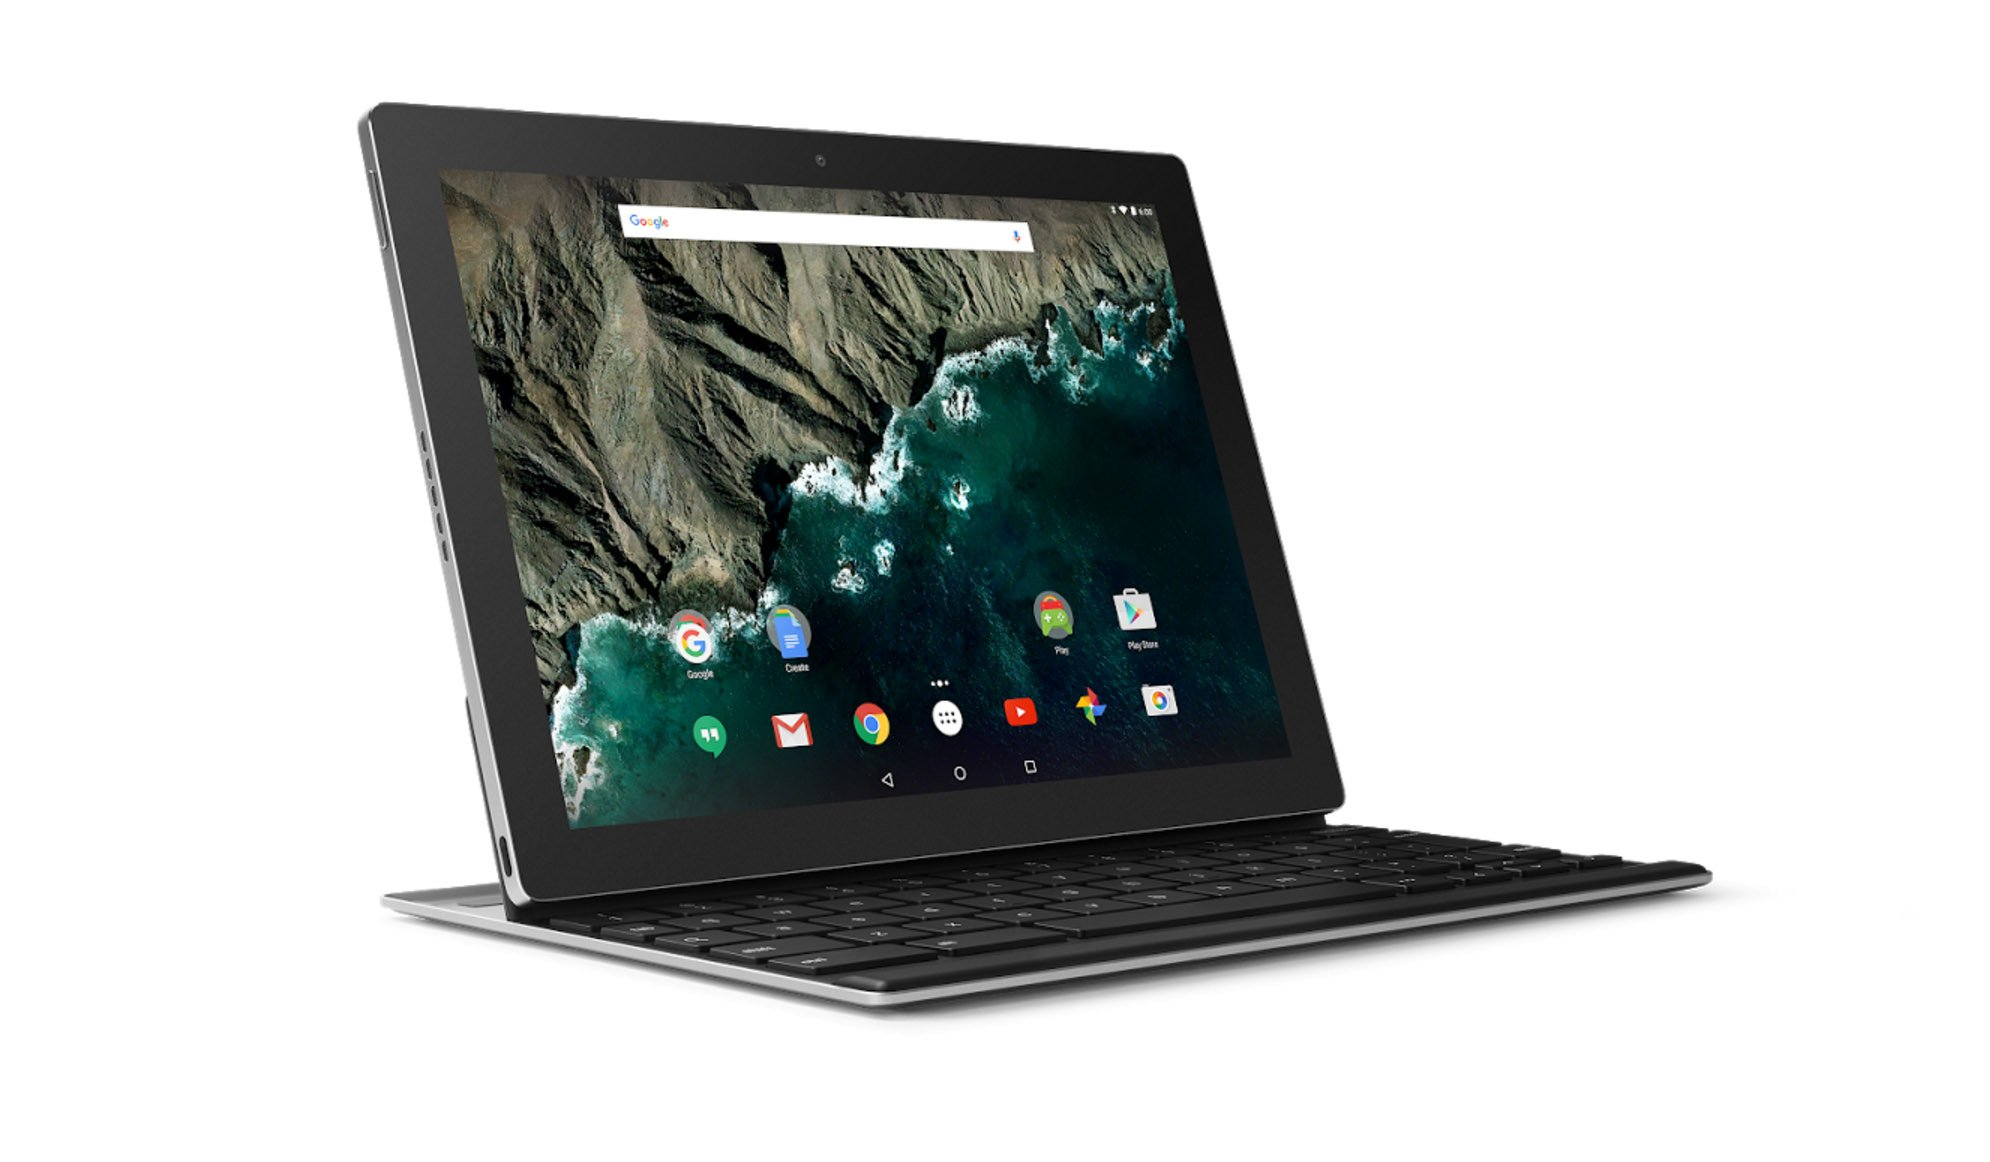 Anche Chromebook Pixel 2 riceve il Play Store sul canale stabile di Chrome OS